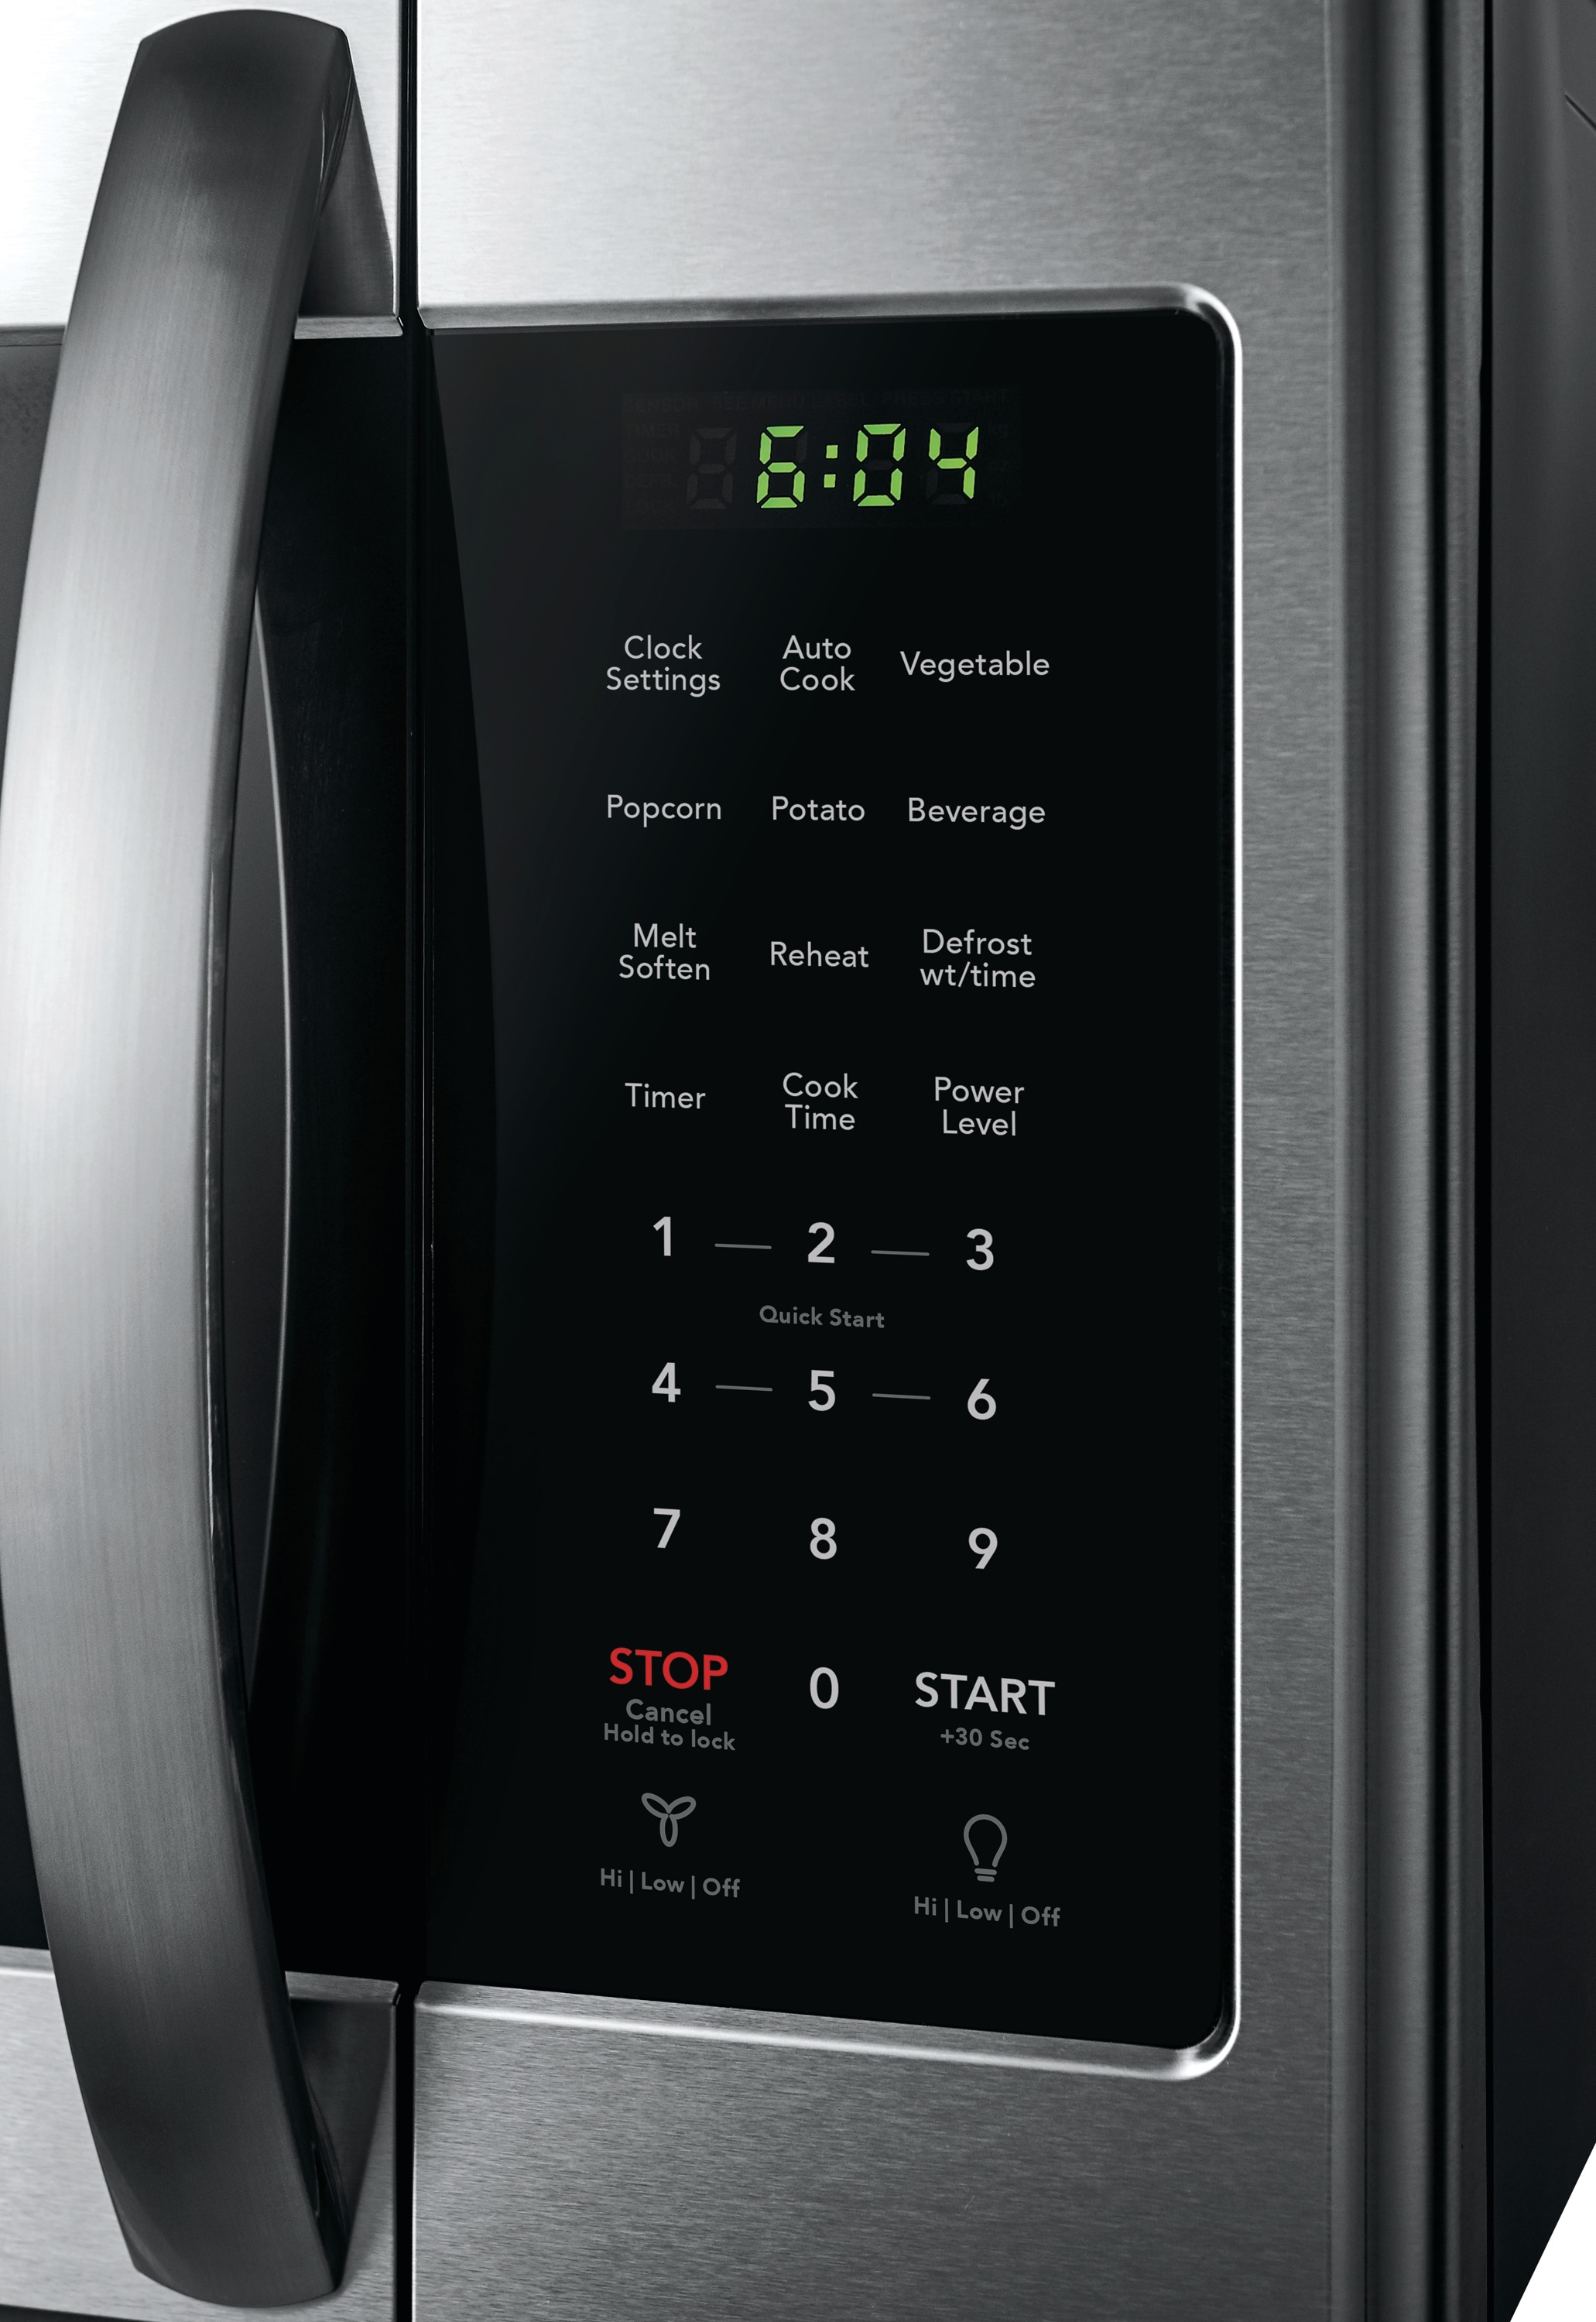 Model: FFMV1745TS | 1.7 Cu. Ft. Over-The-Range Microwave